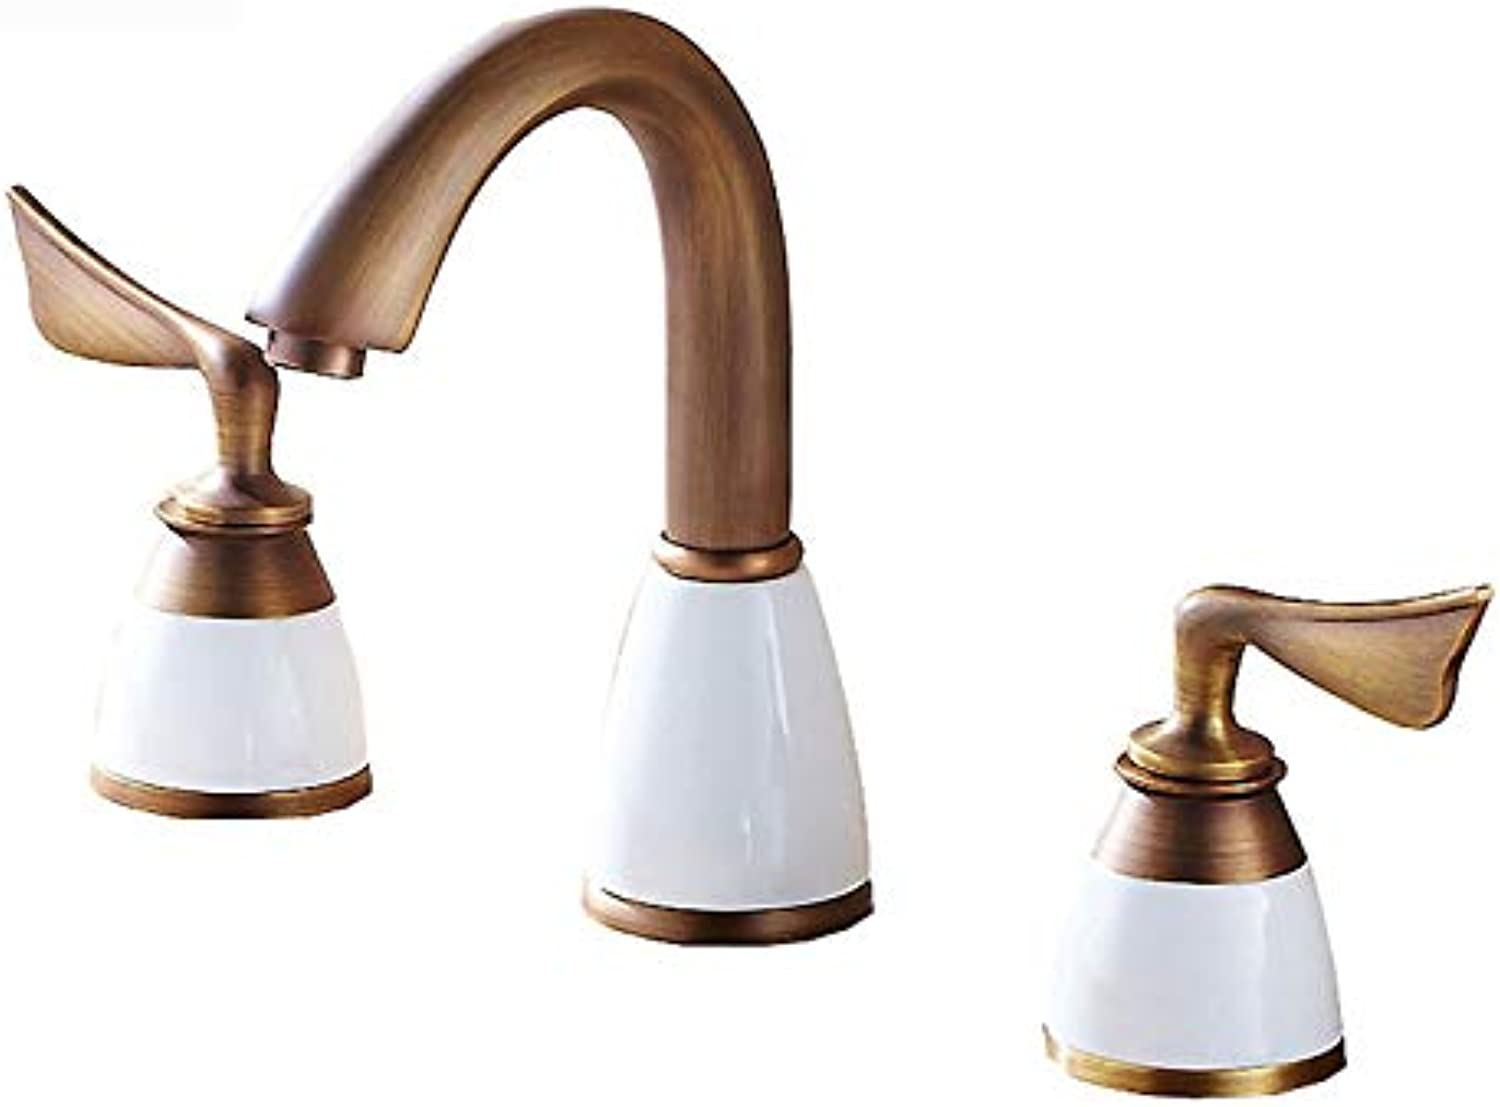 redOOY Taps Faucet Basin Mixer Full Copper Three-Hole Split Basin Bathroom Cabinet Wash Basin Hot And Cold Water Mixer Tap D